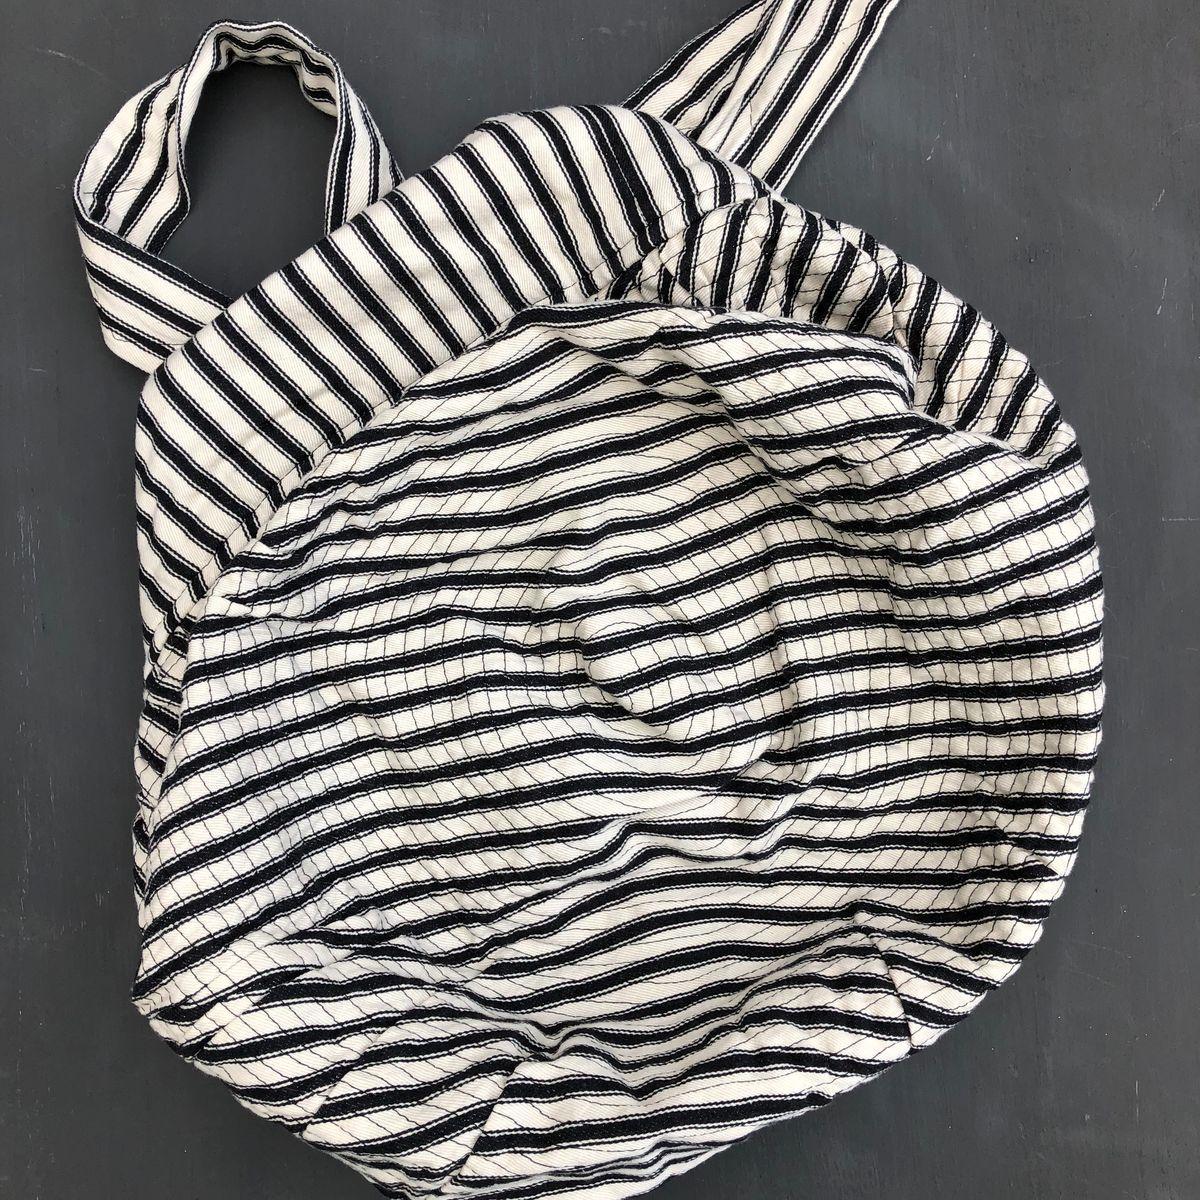 Monochrome bucket style shopping bag - product images  of